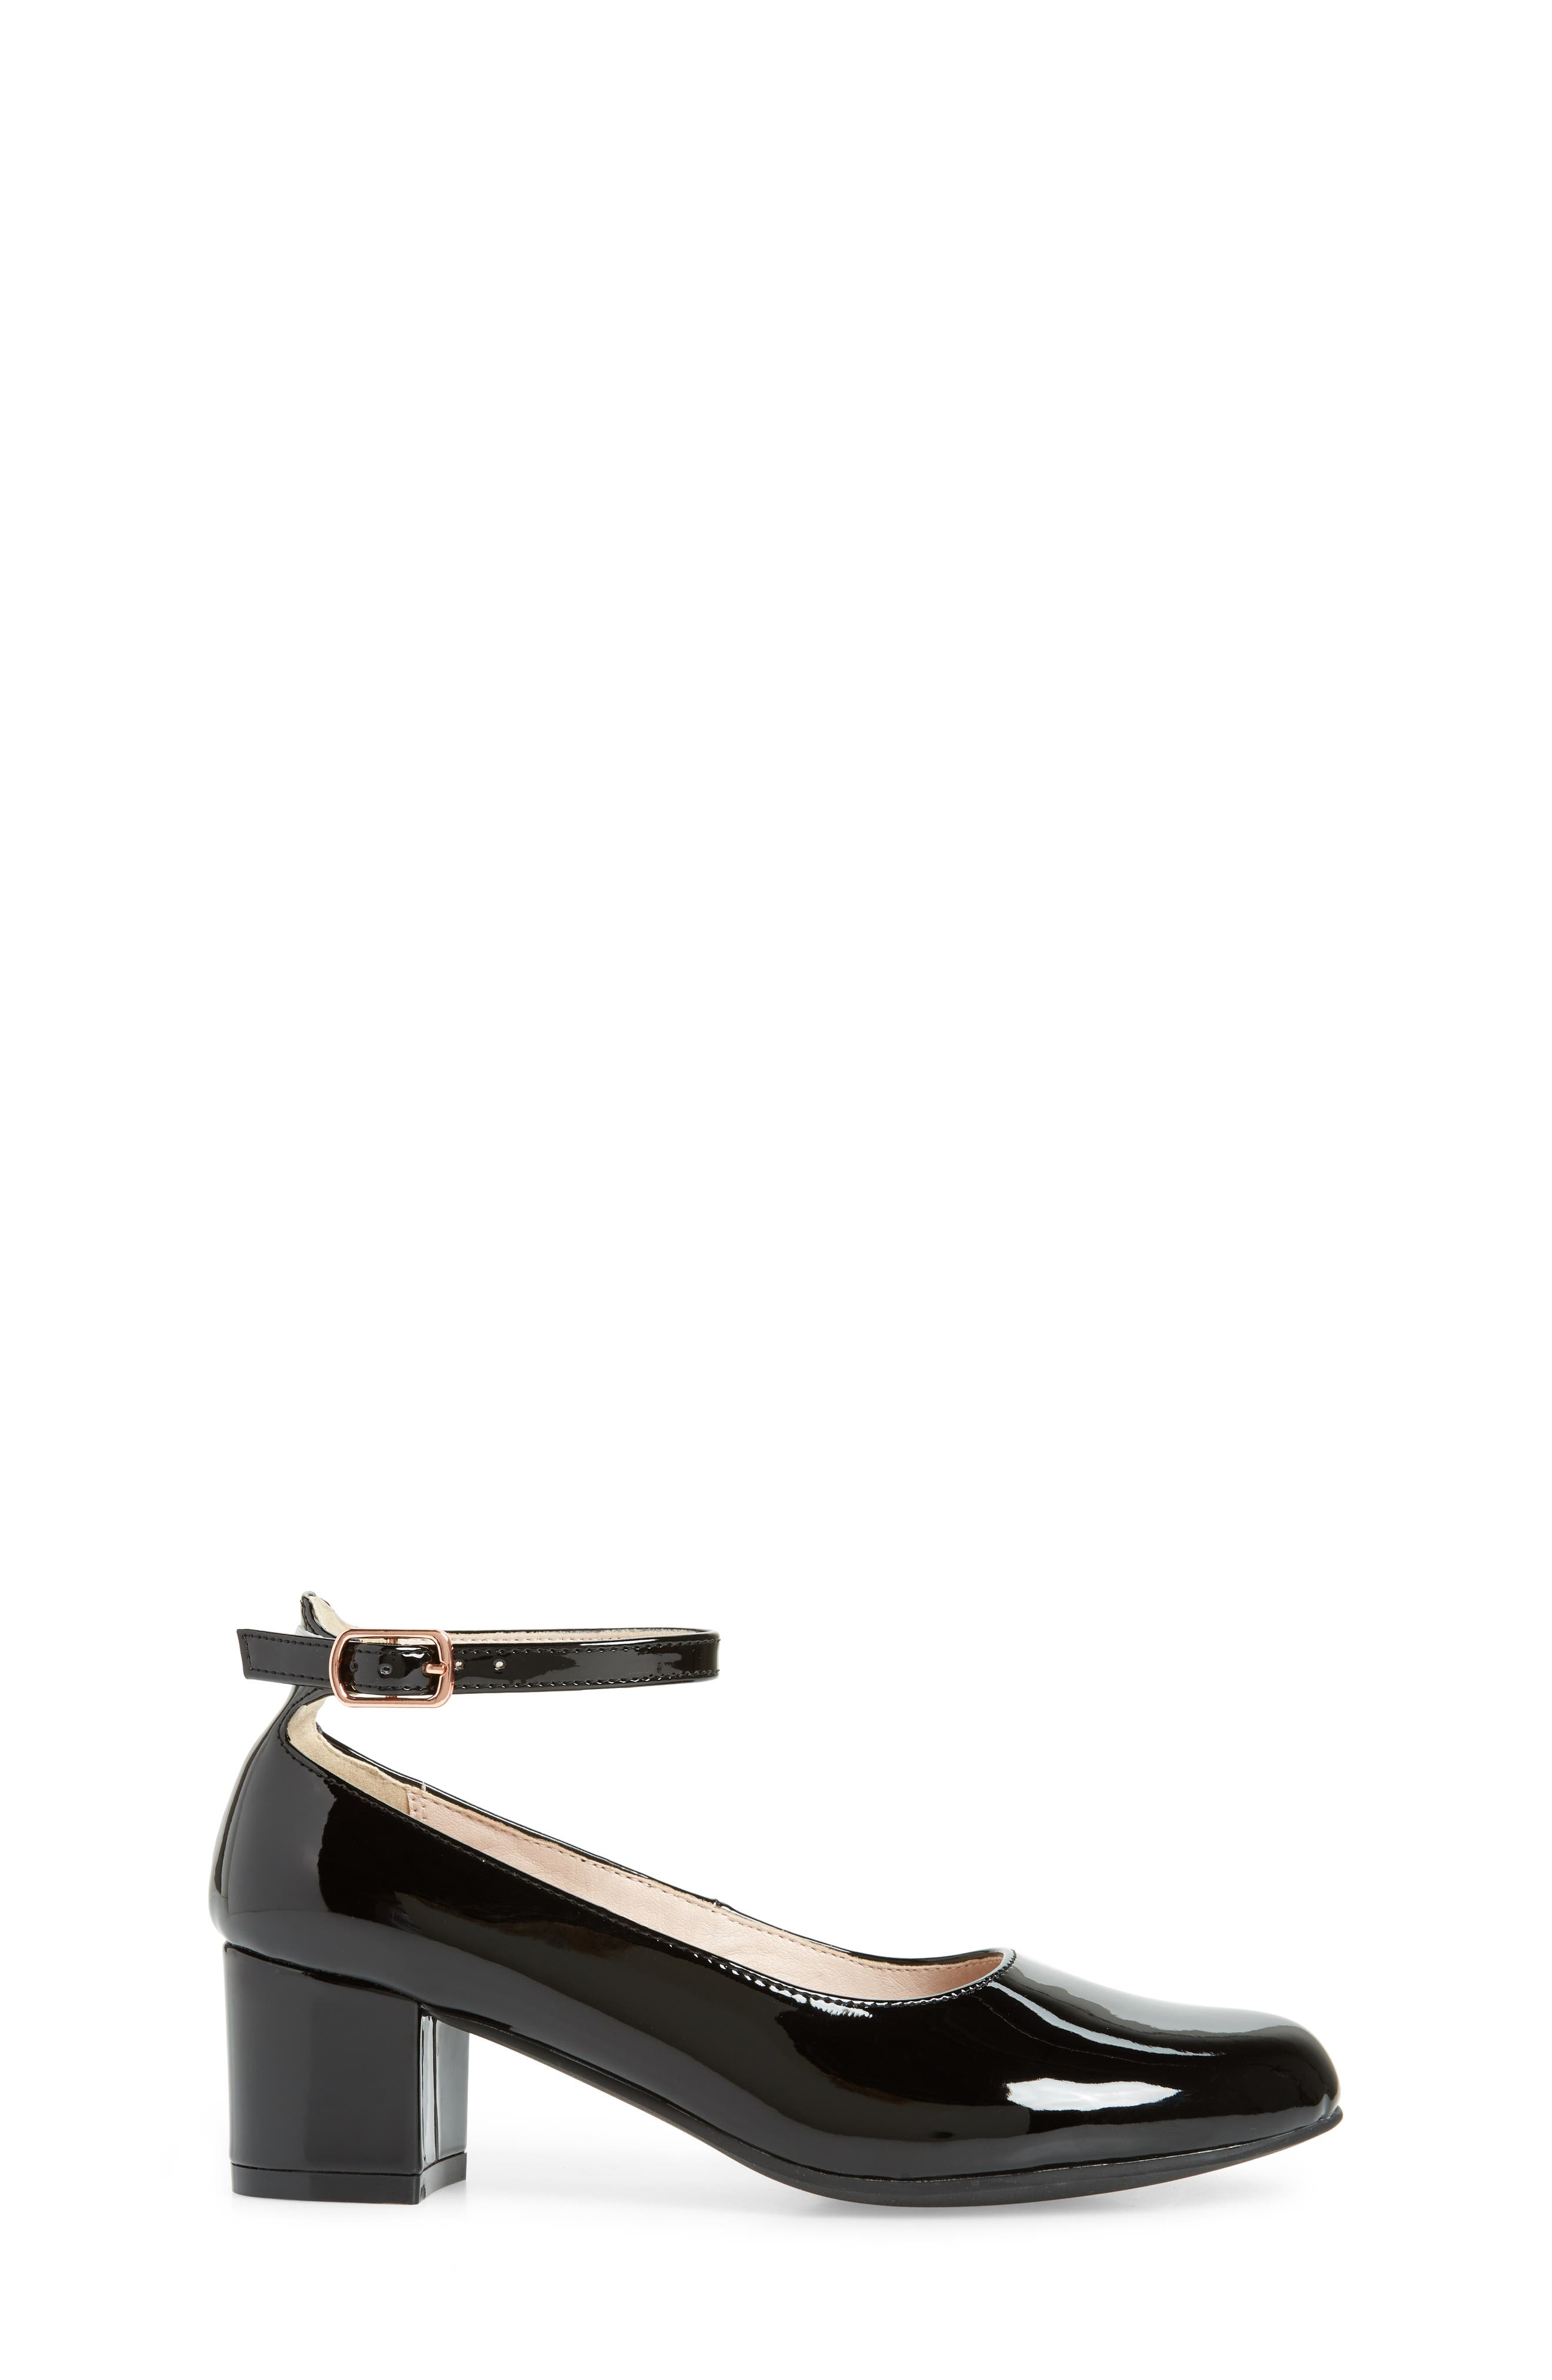 RUBY & BLOOM, Jessica Ankle Strap Pump, Alternate thumbnail 3, color, BLACK PATENT FAUX LEATHER